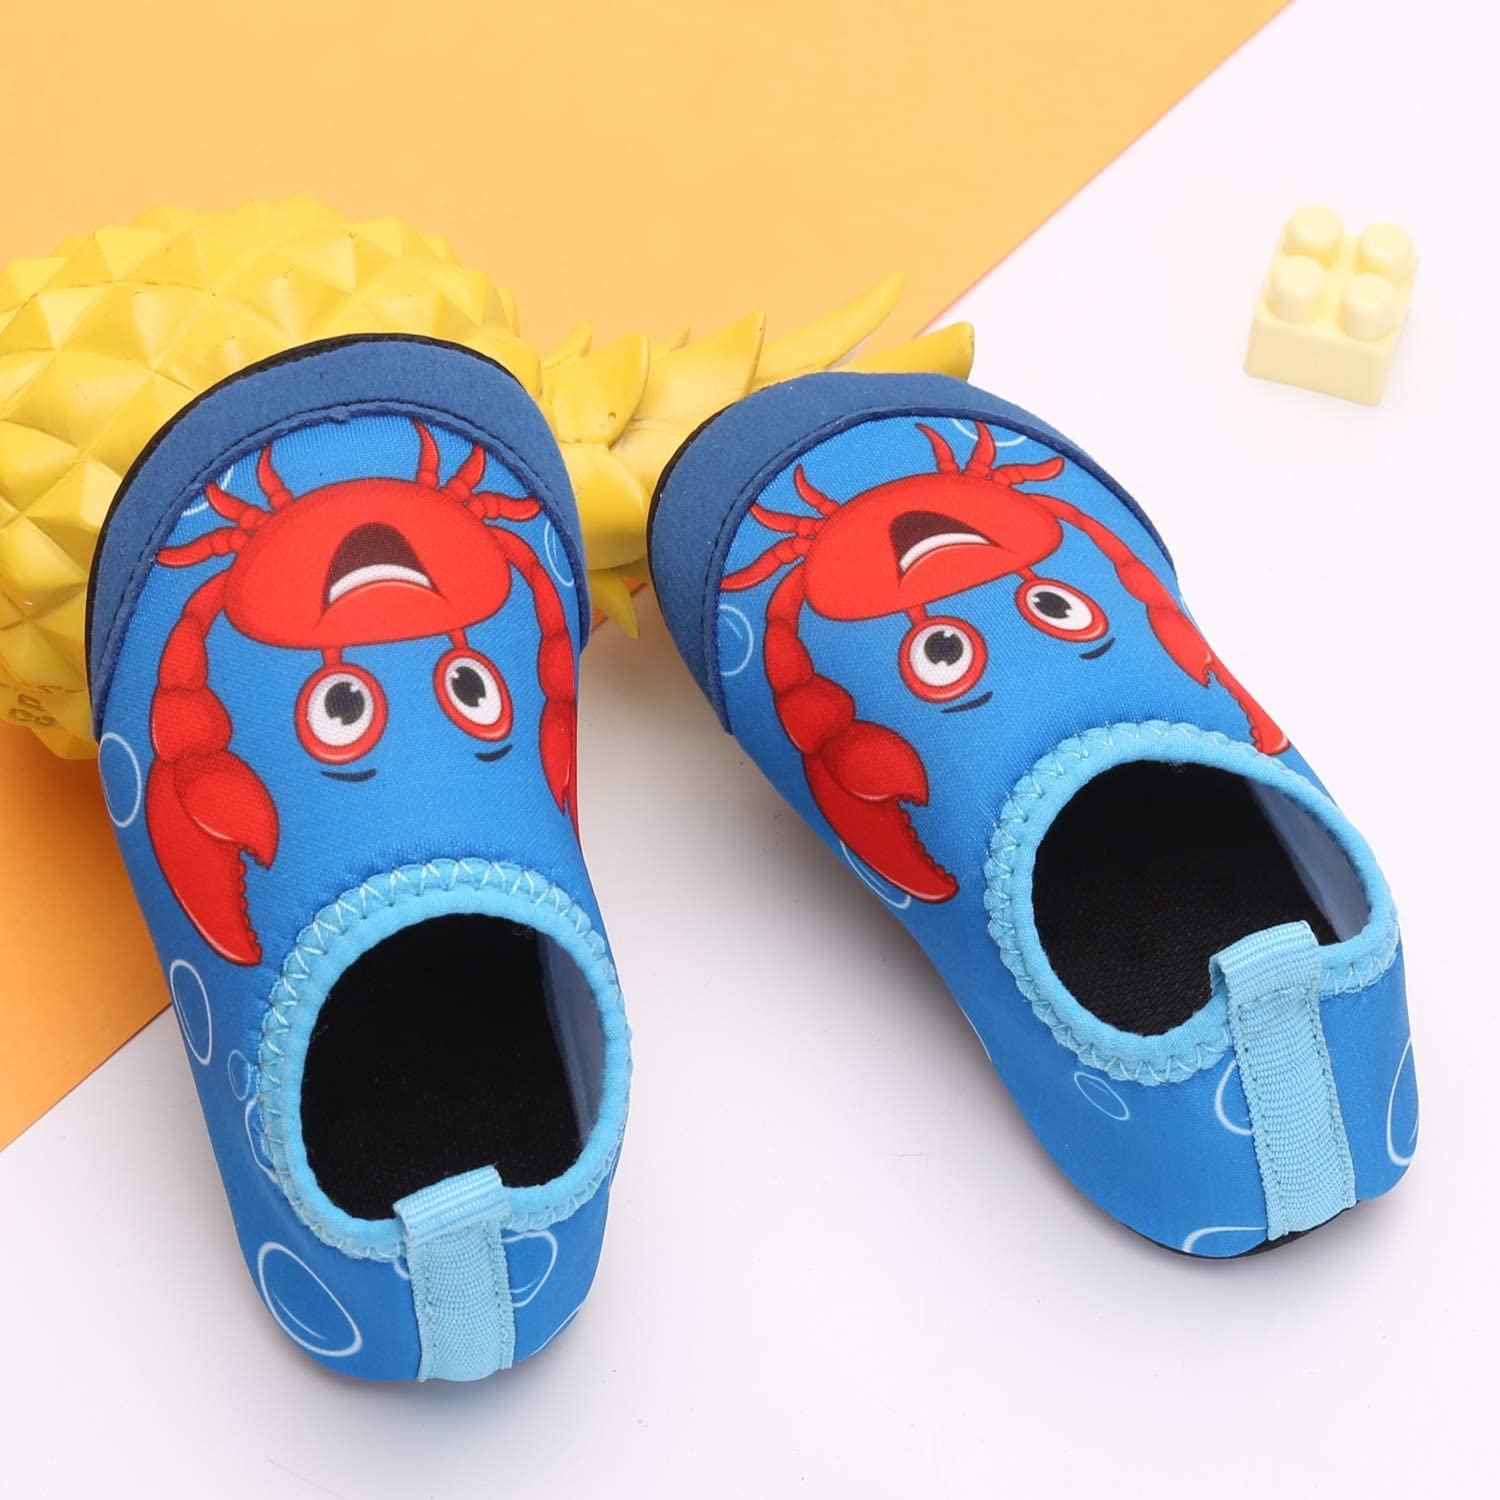 MoreDays Kid Toddler Non-Slip Quick Dry Water Shoes Aqua Socks Shoes for Beach Swim Pool Baby Boys Girls